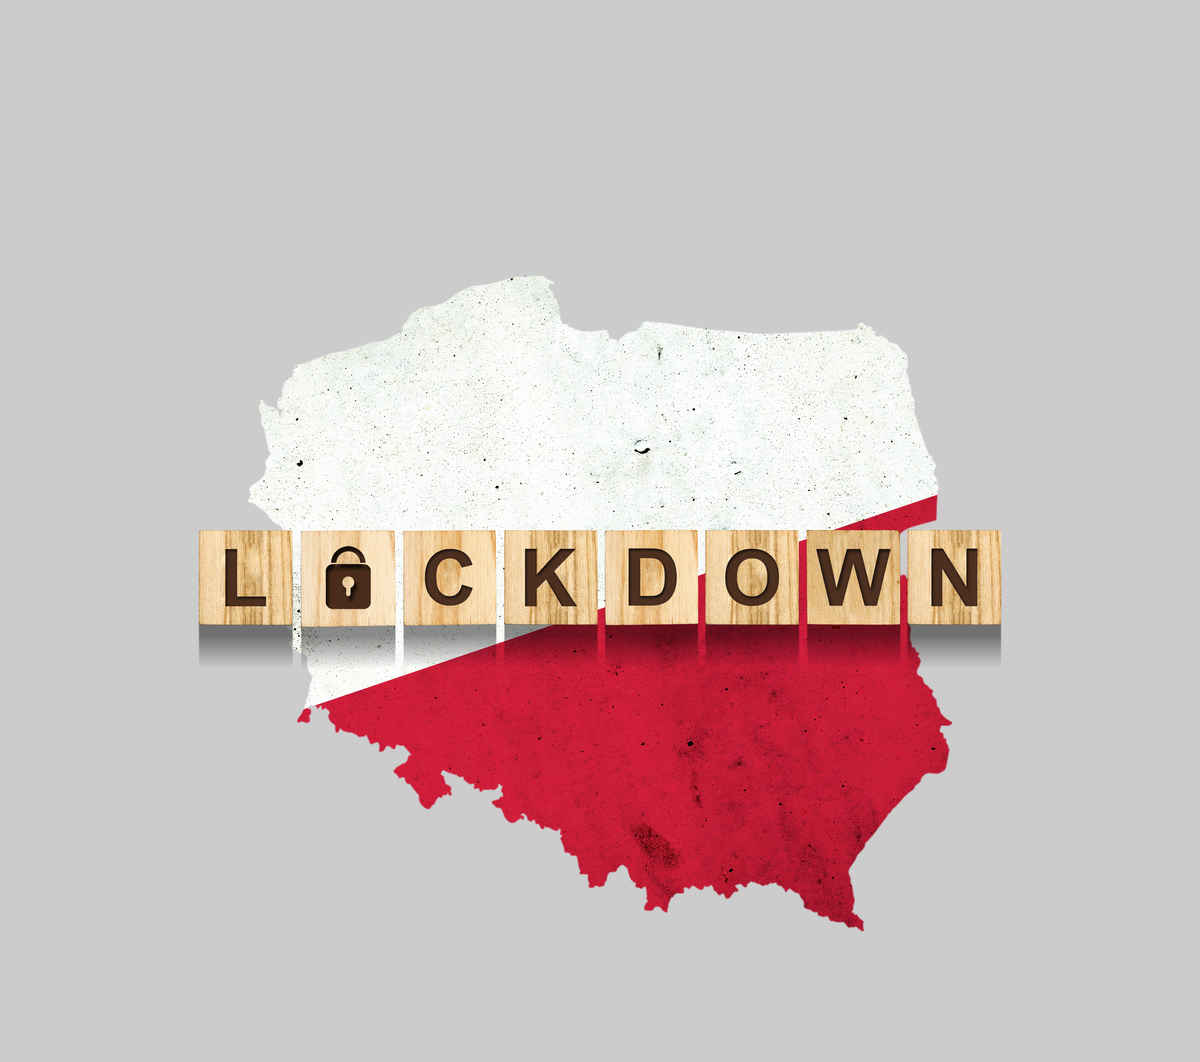 Lockdown in ganz Polen!